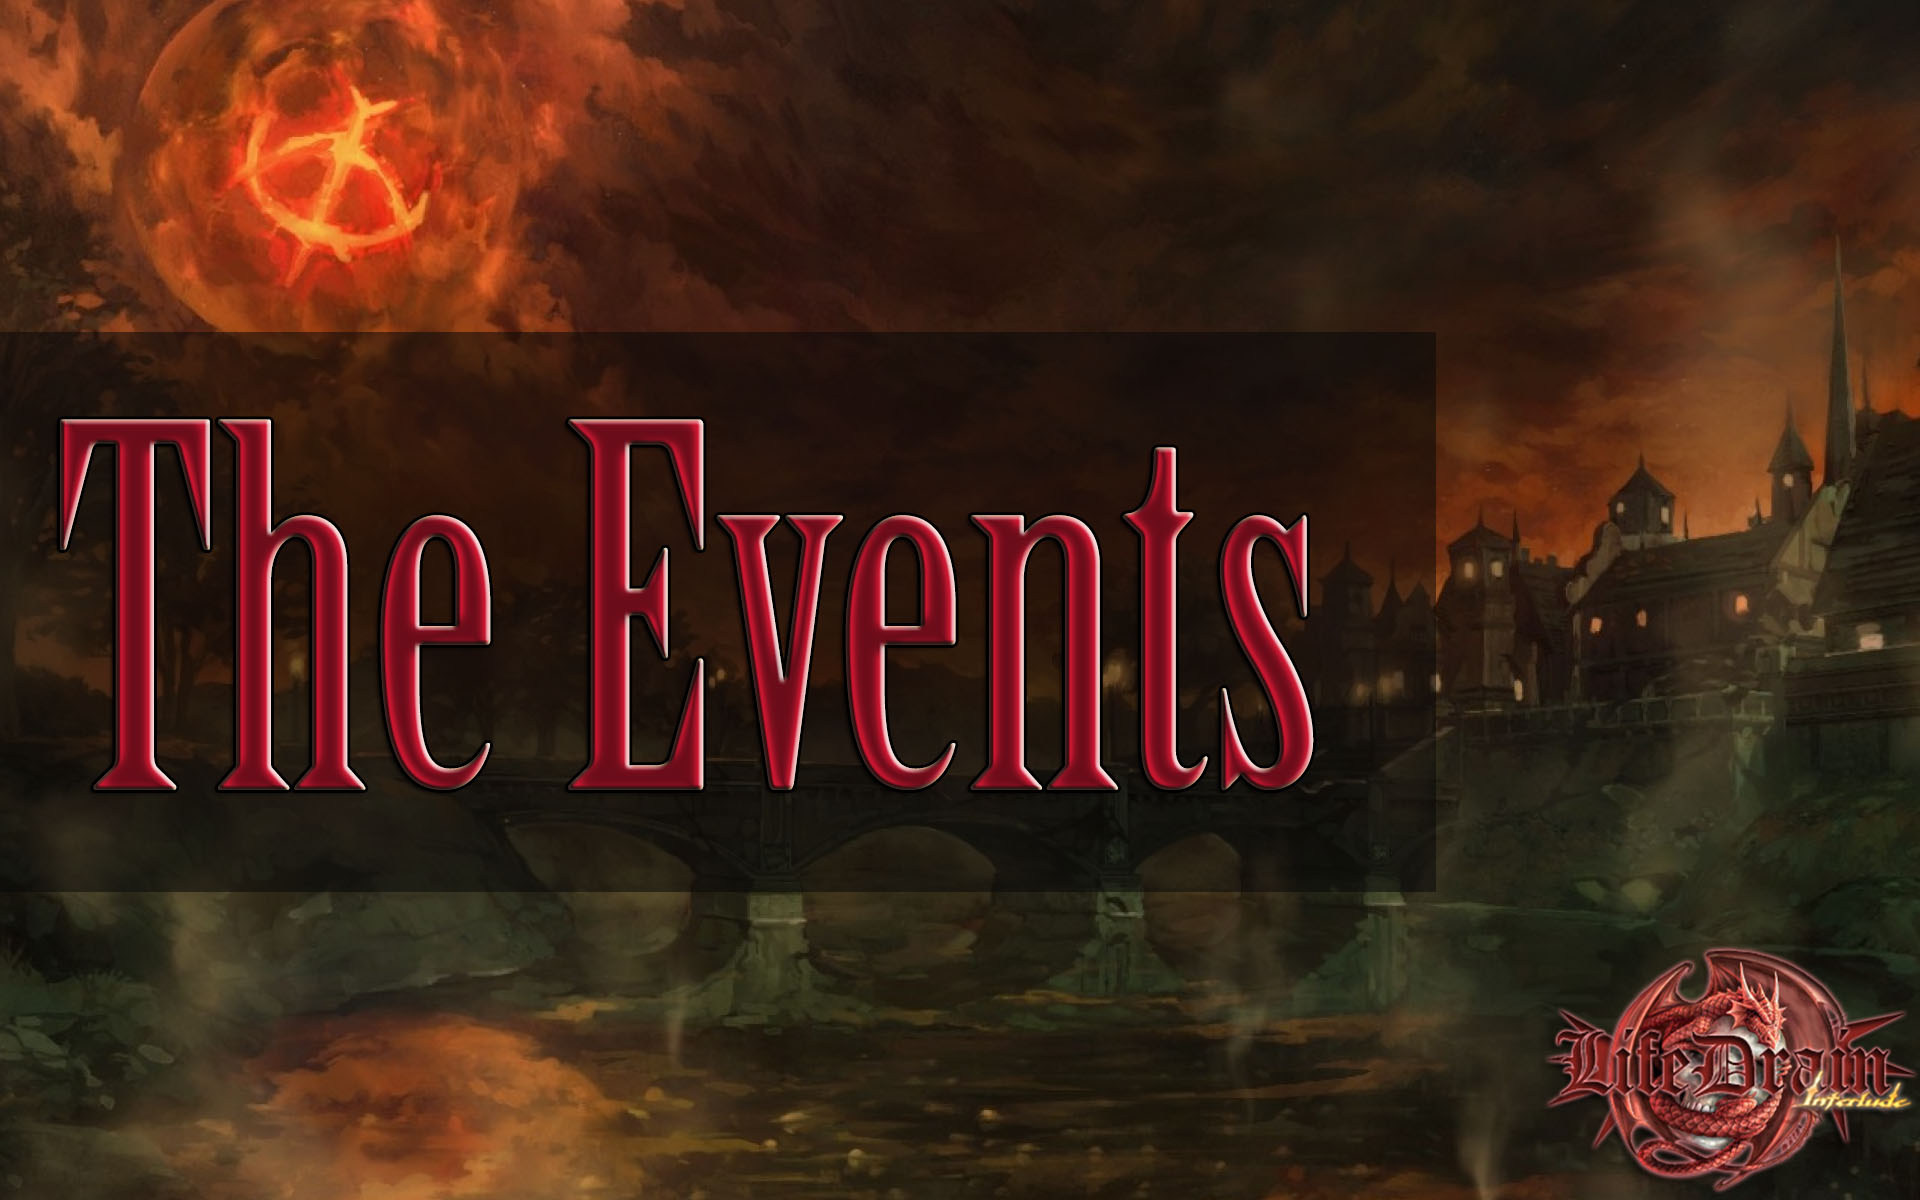 Reminder about the events